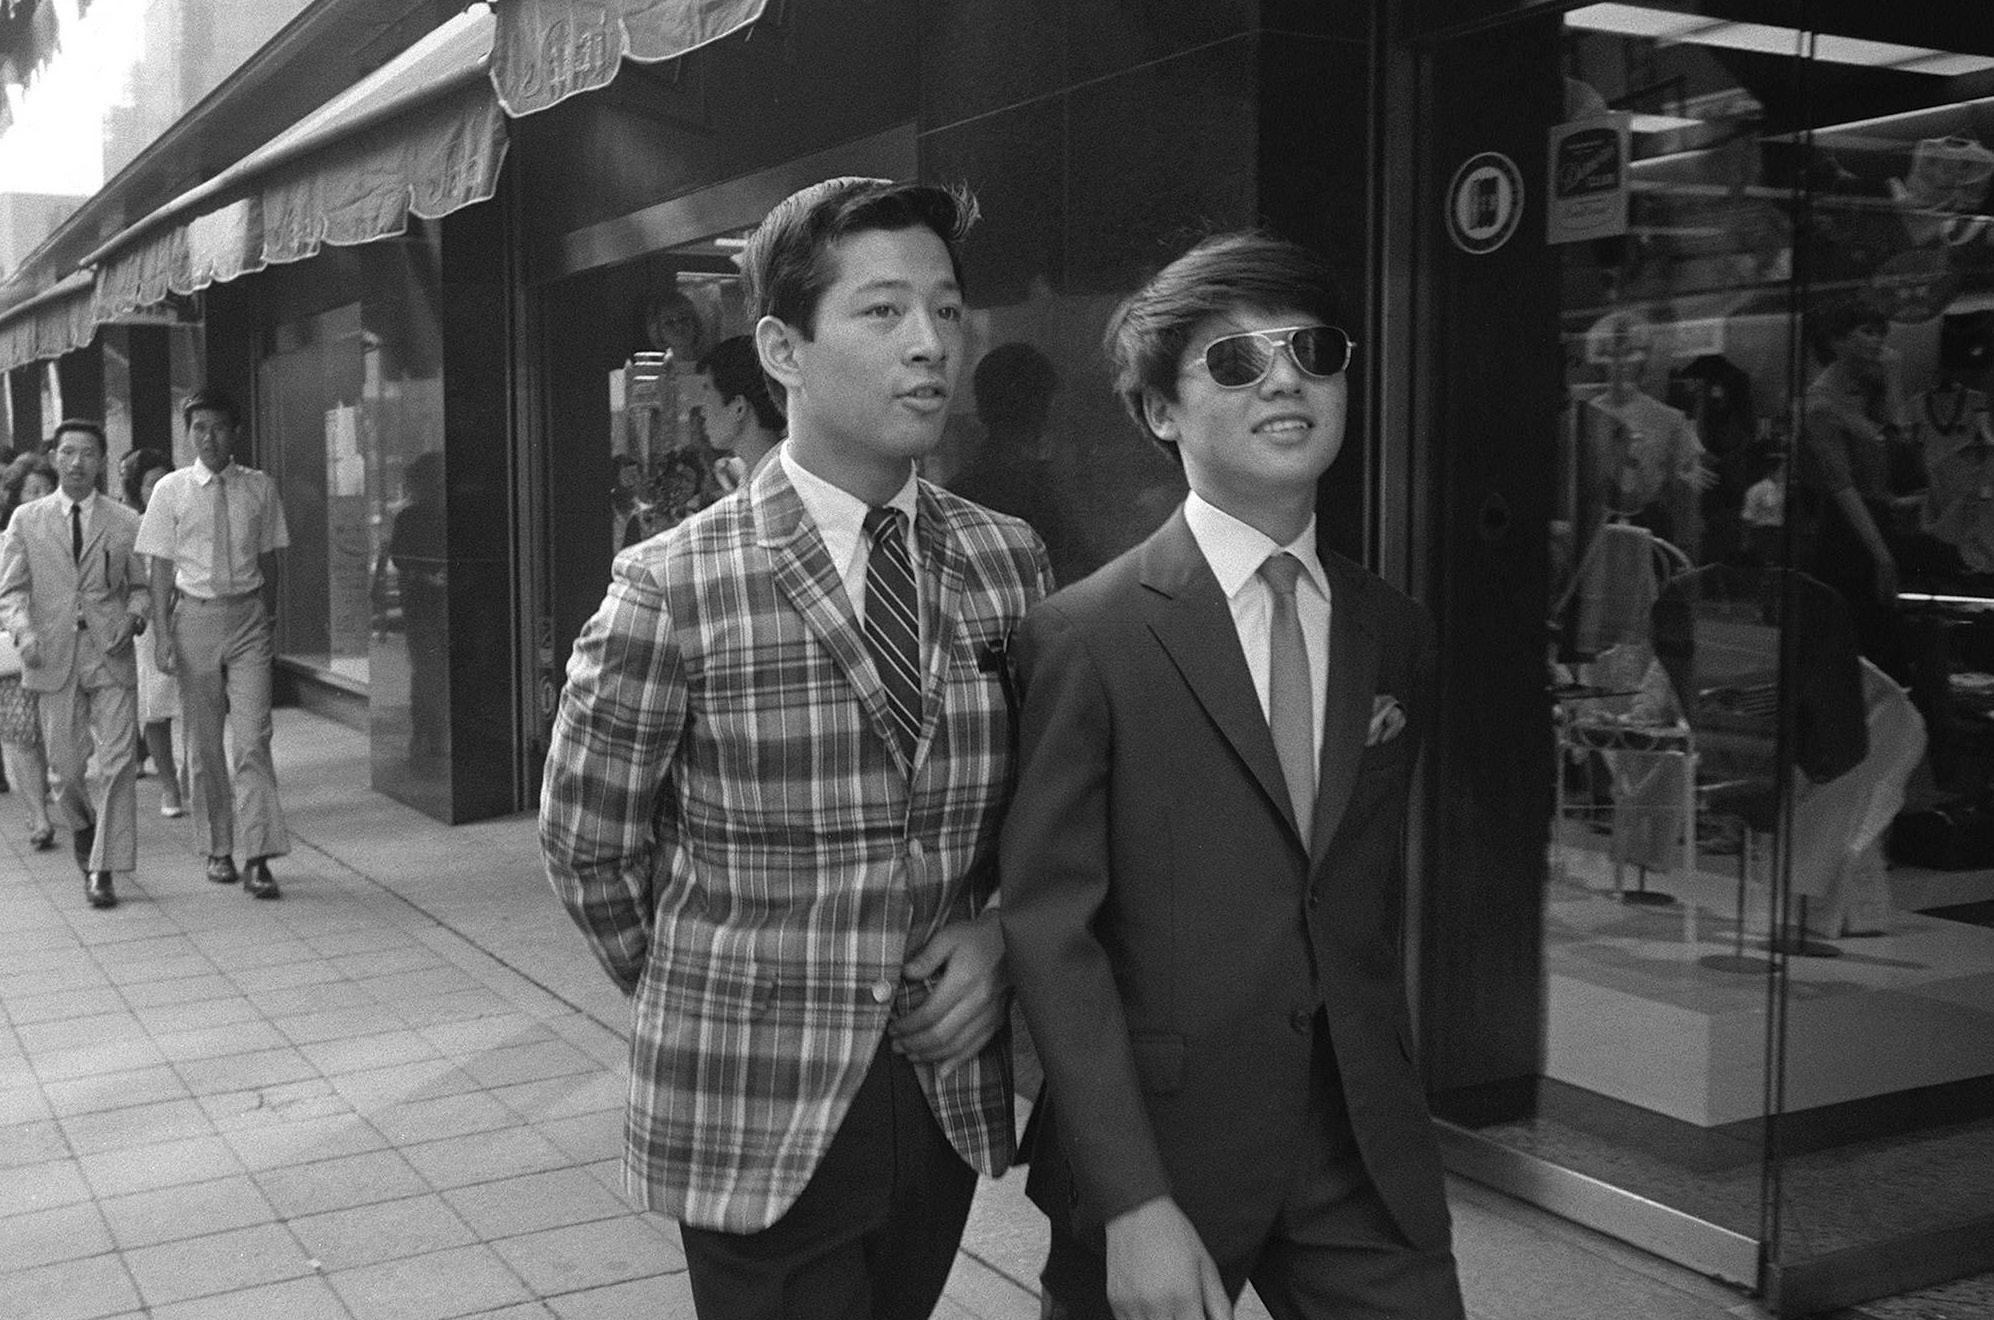 Page 60 of Young & Free: Tokyo's Subcultures